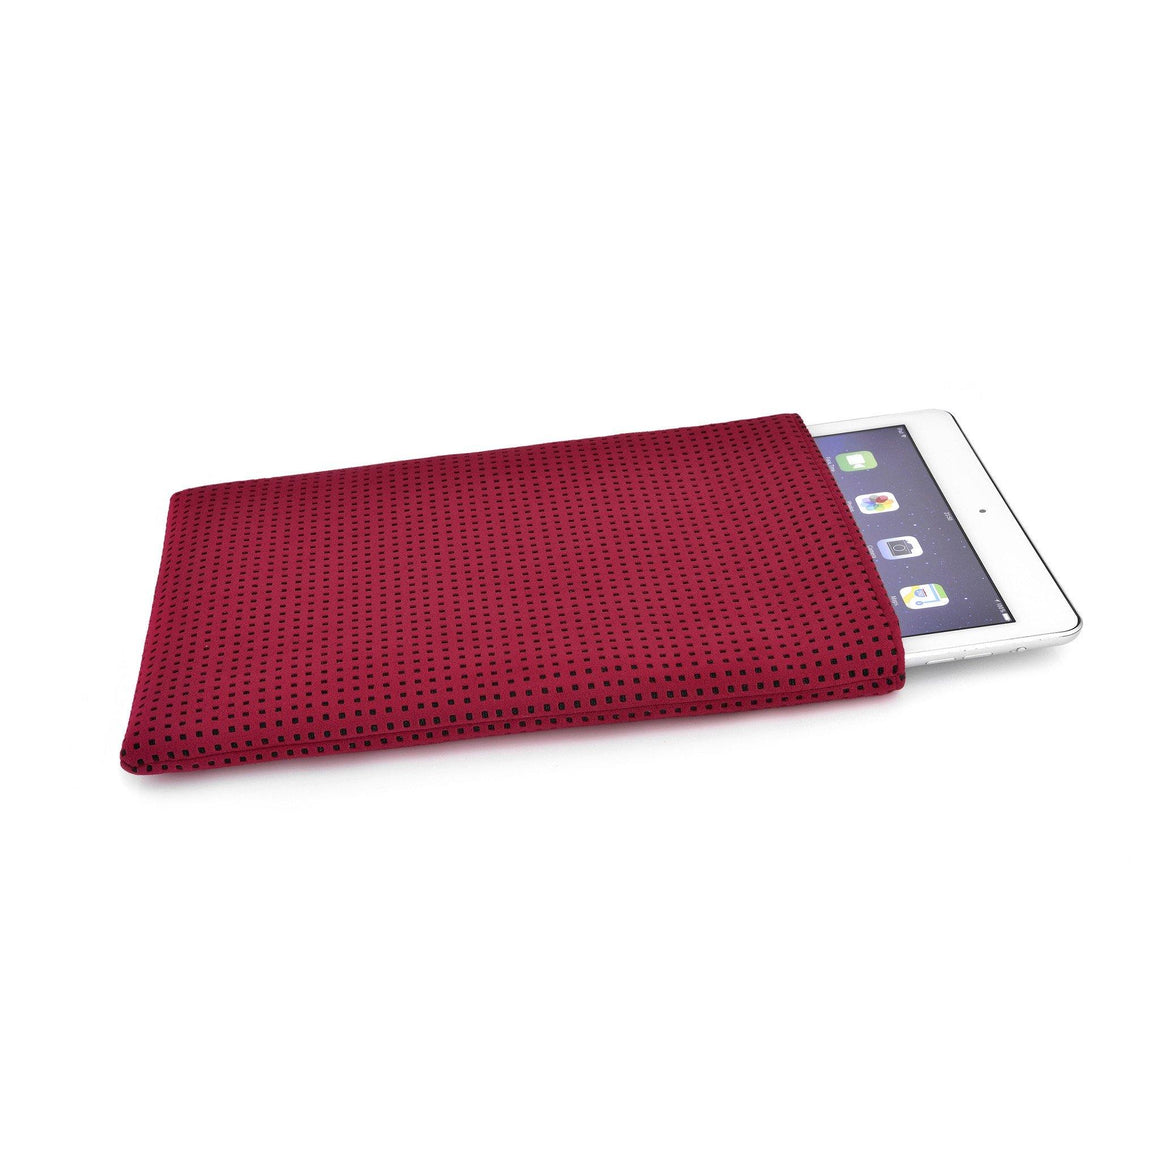 iPad Alcantara Maroon - Wrappers UK